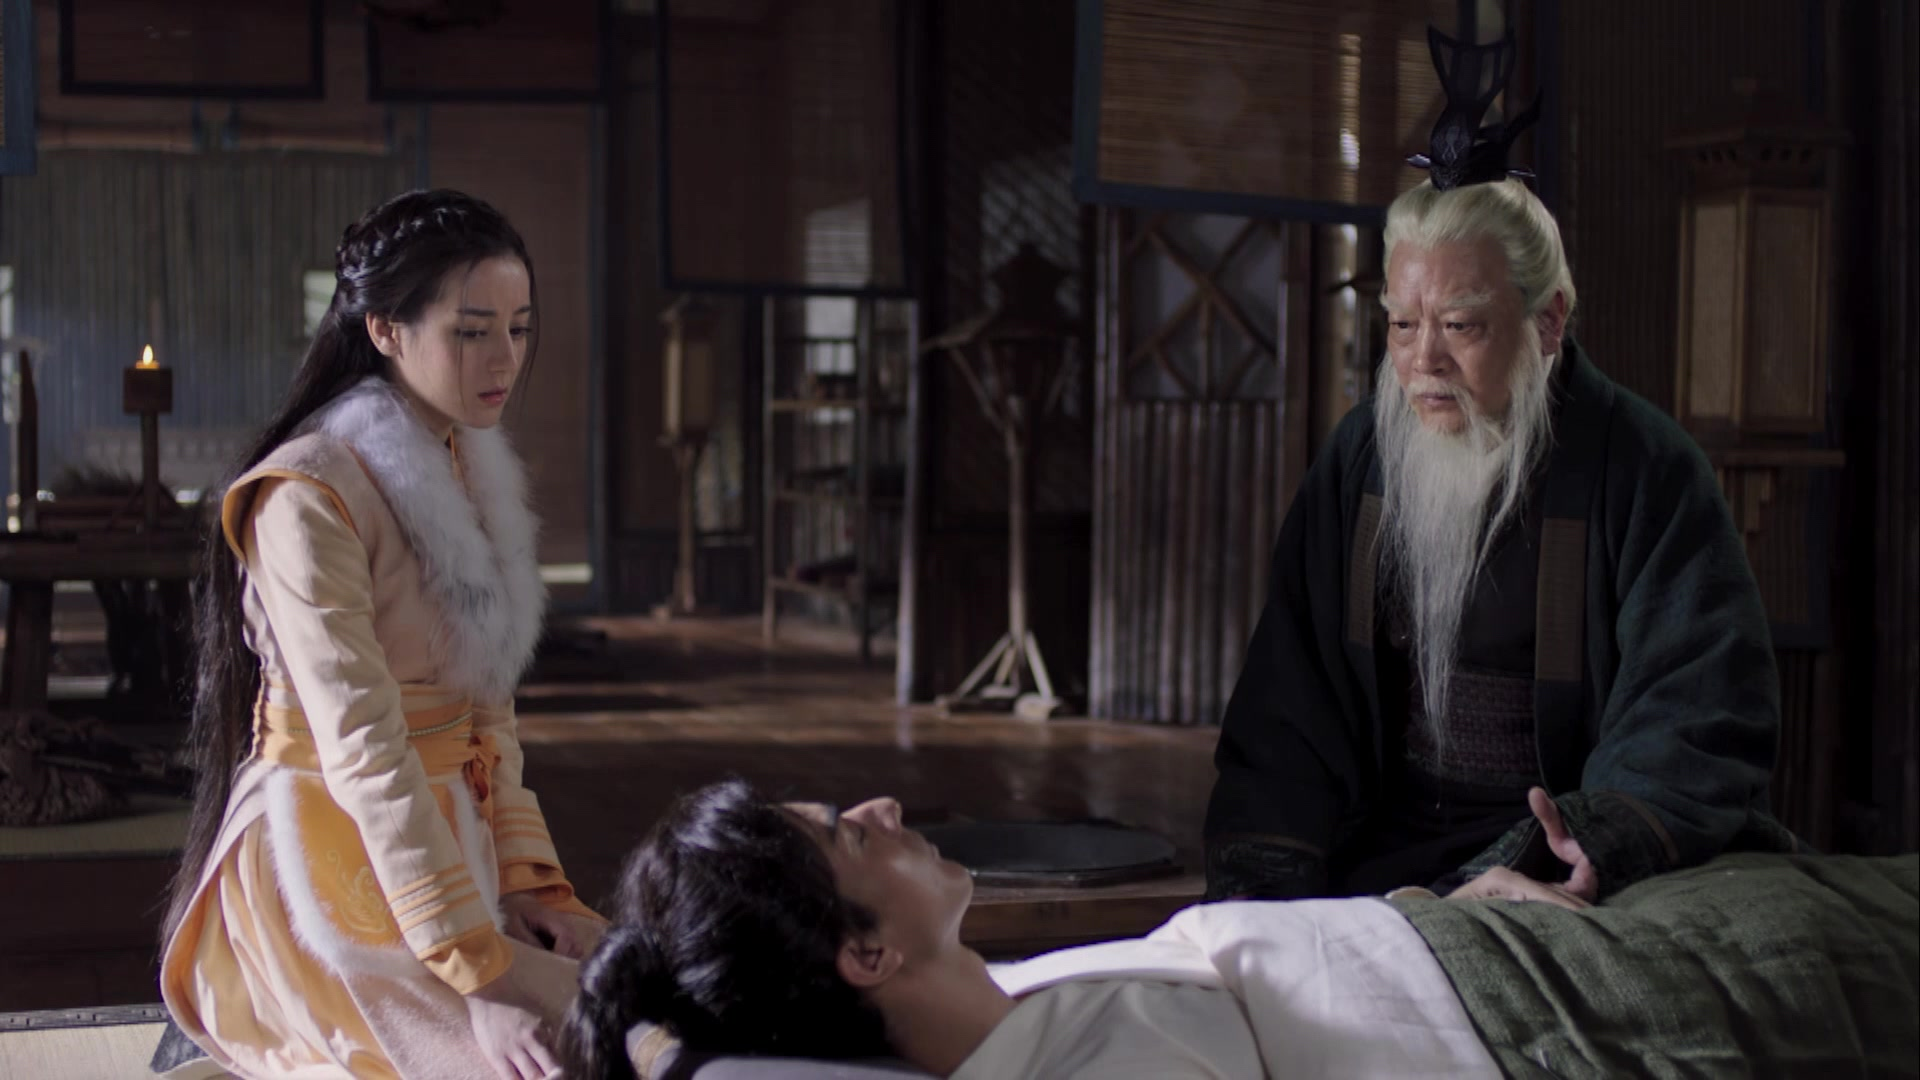 The King's Woman Episode 6